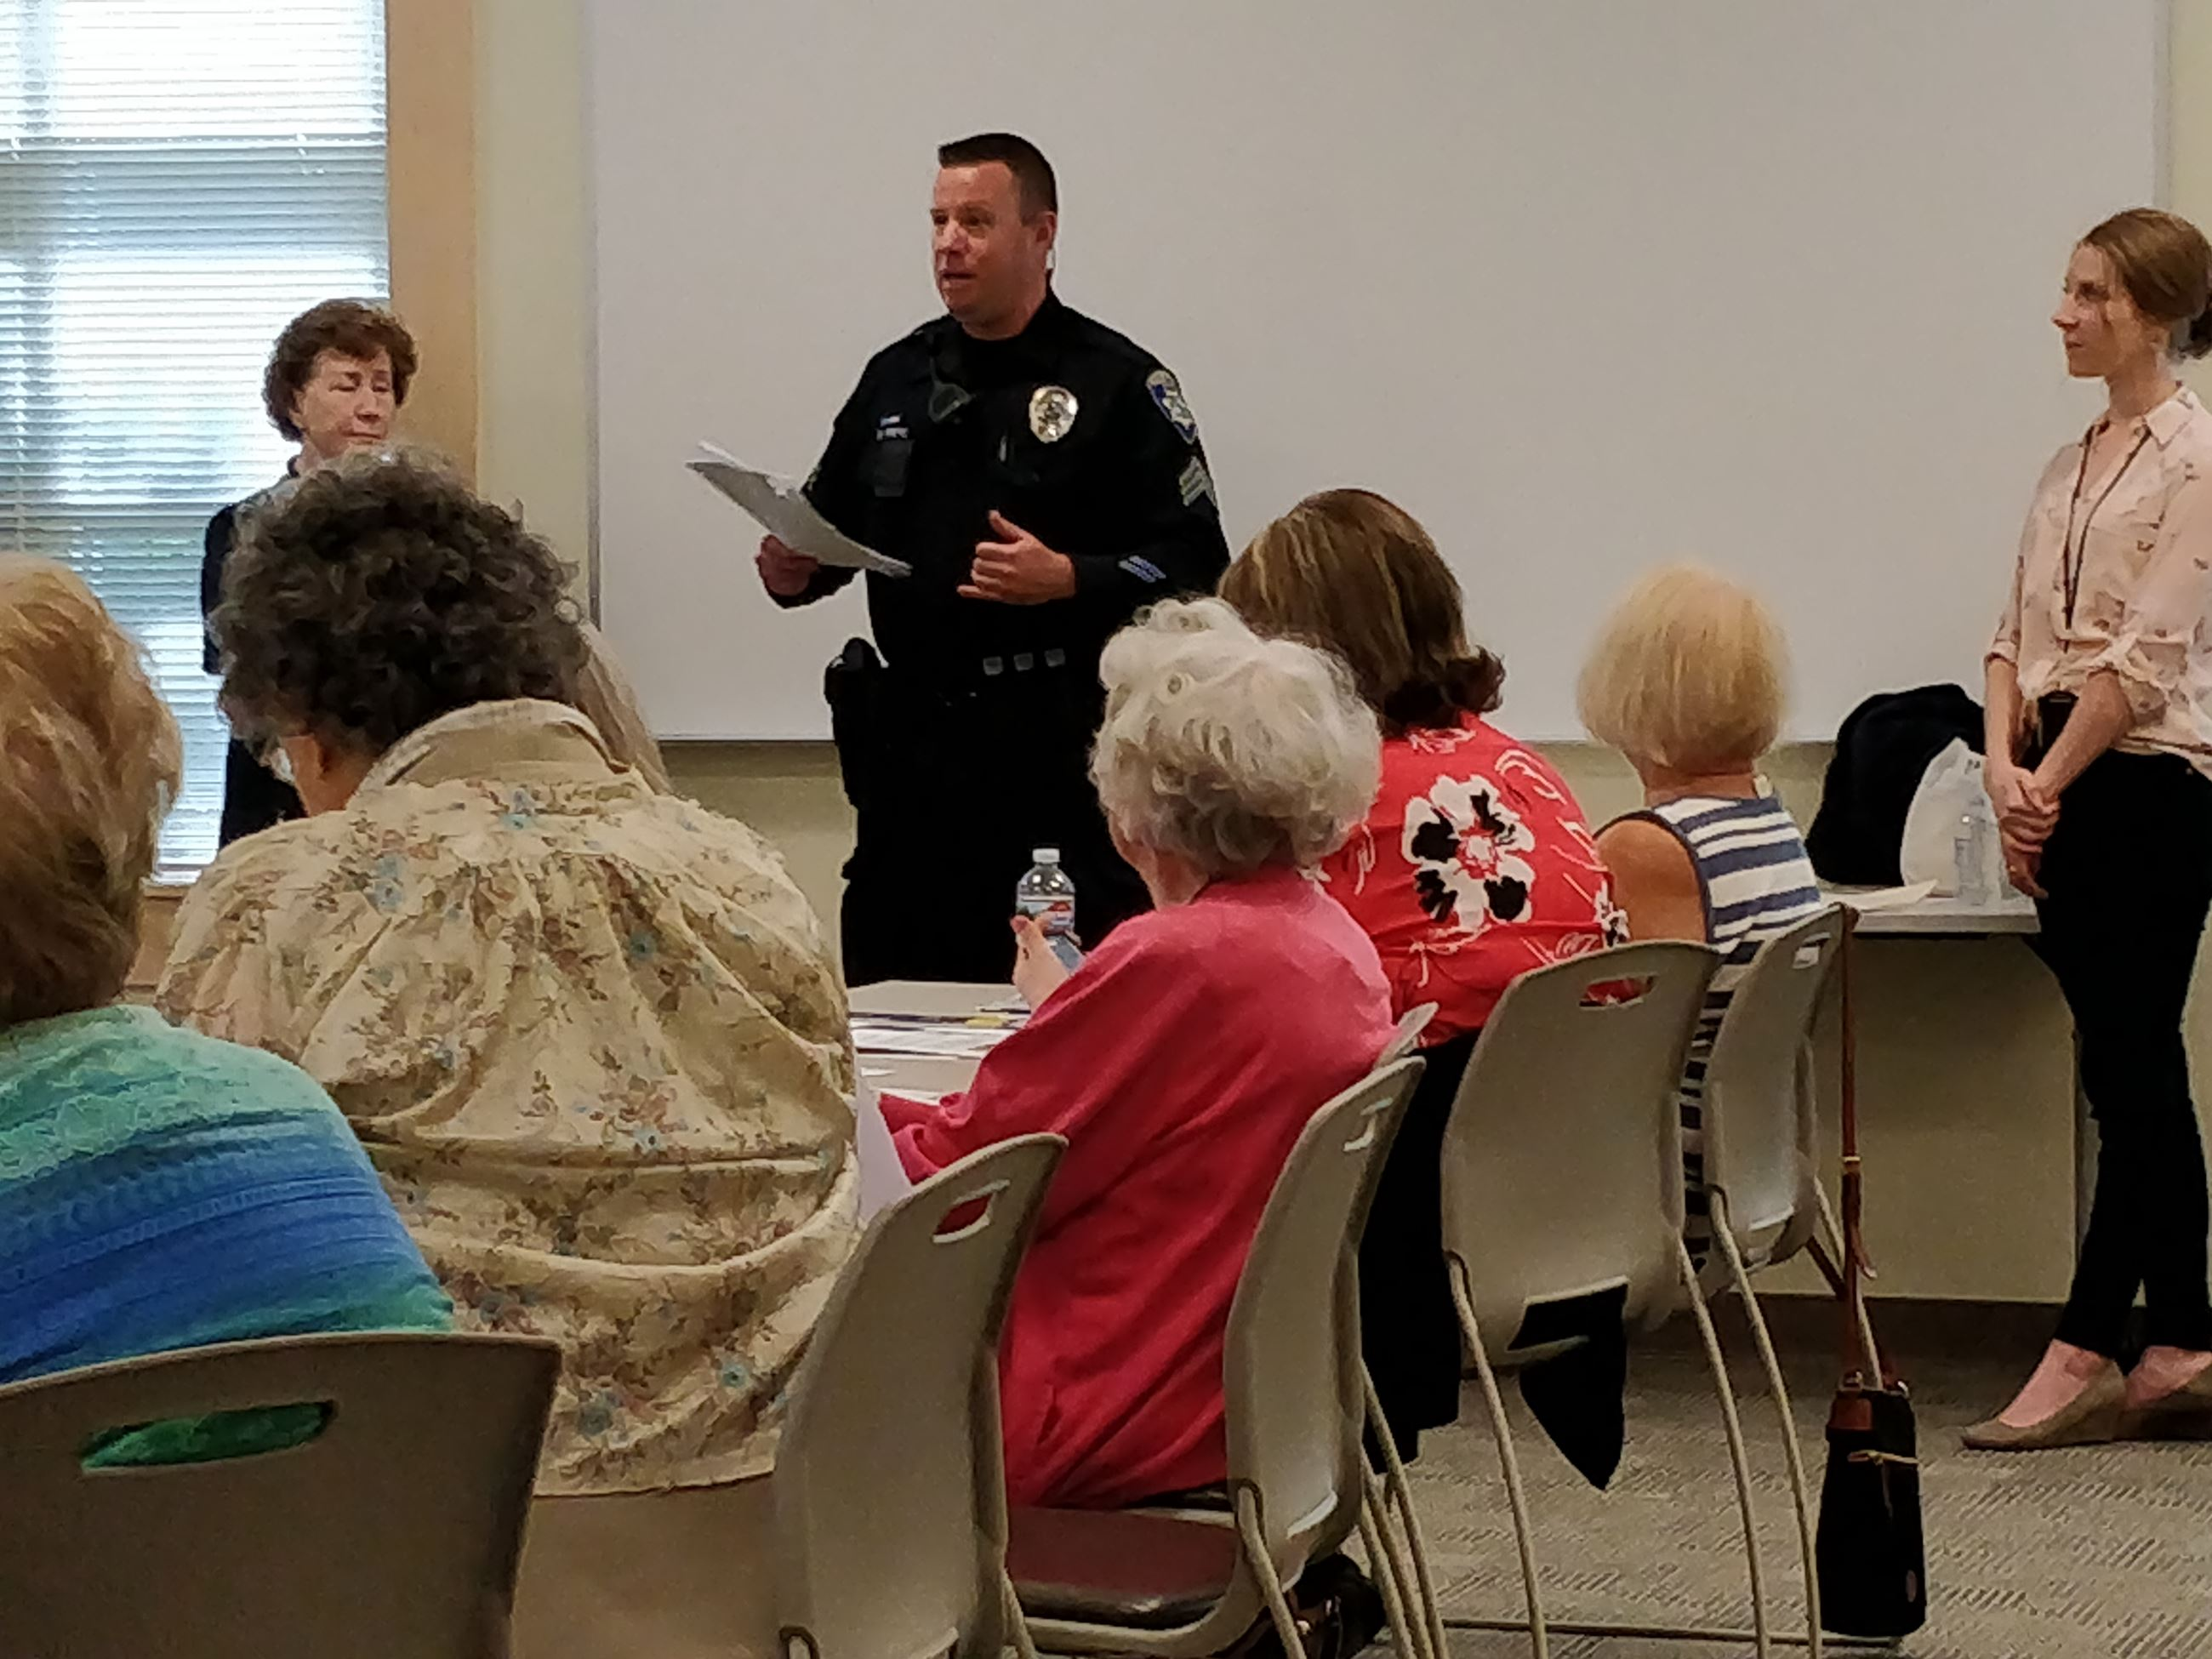 Officer Priebe, Courtney Lee, and Neighborhood Watch Coordinator, Pam Mosher